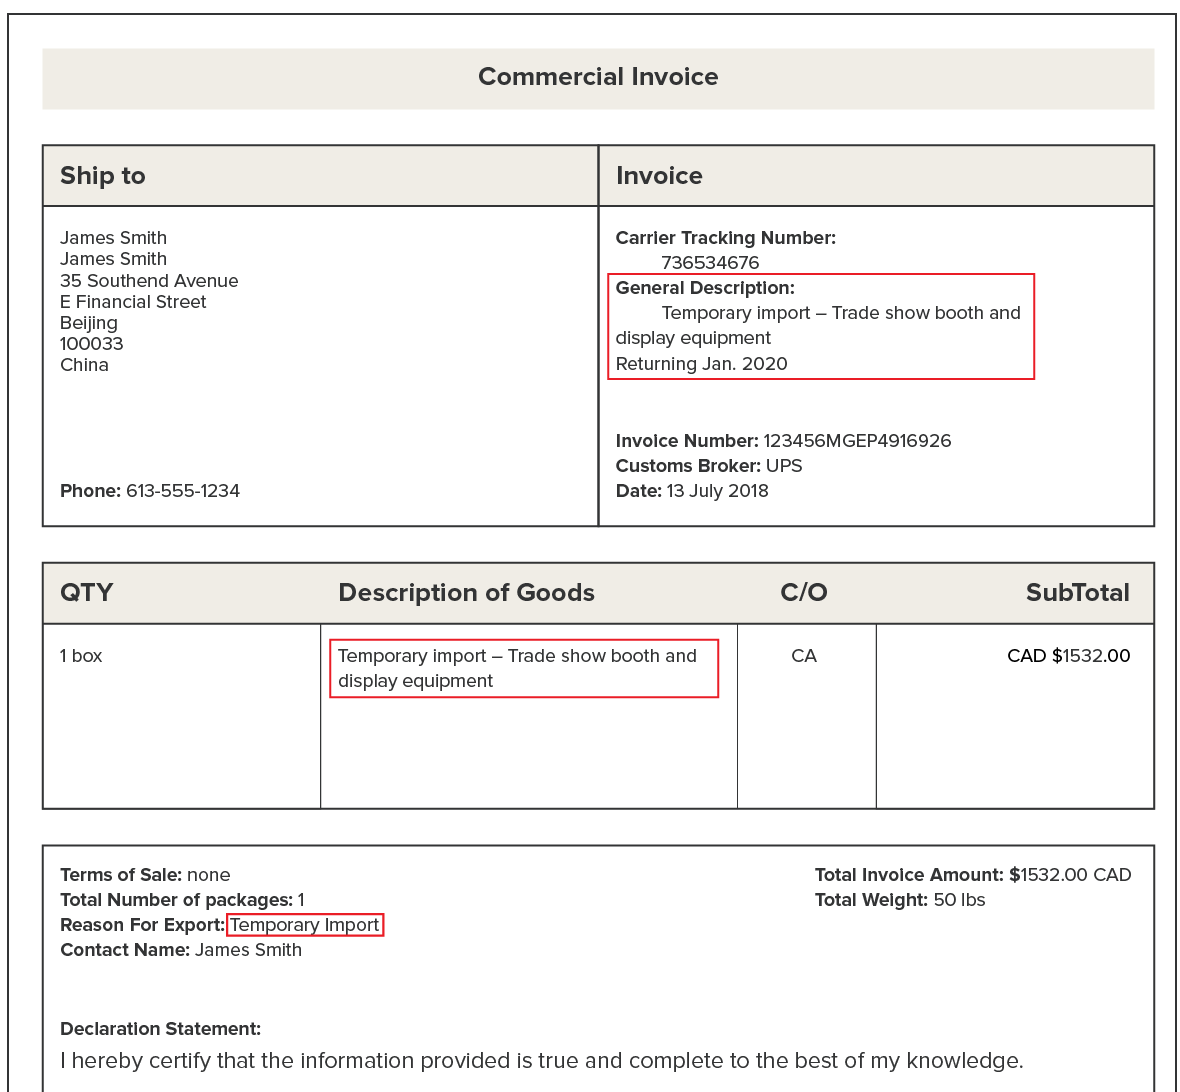 Guide to Shipping From Canada to China - Costs, Document